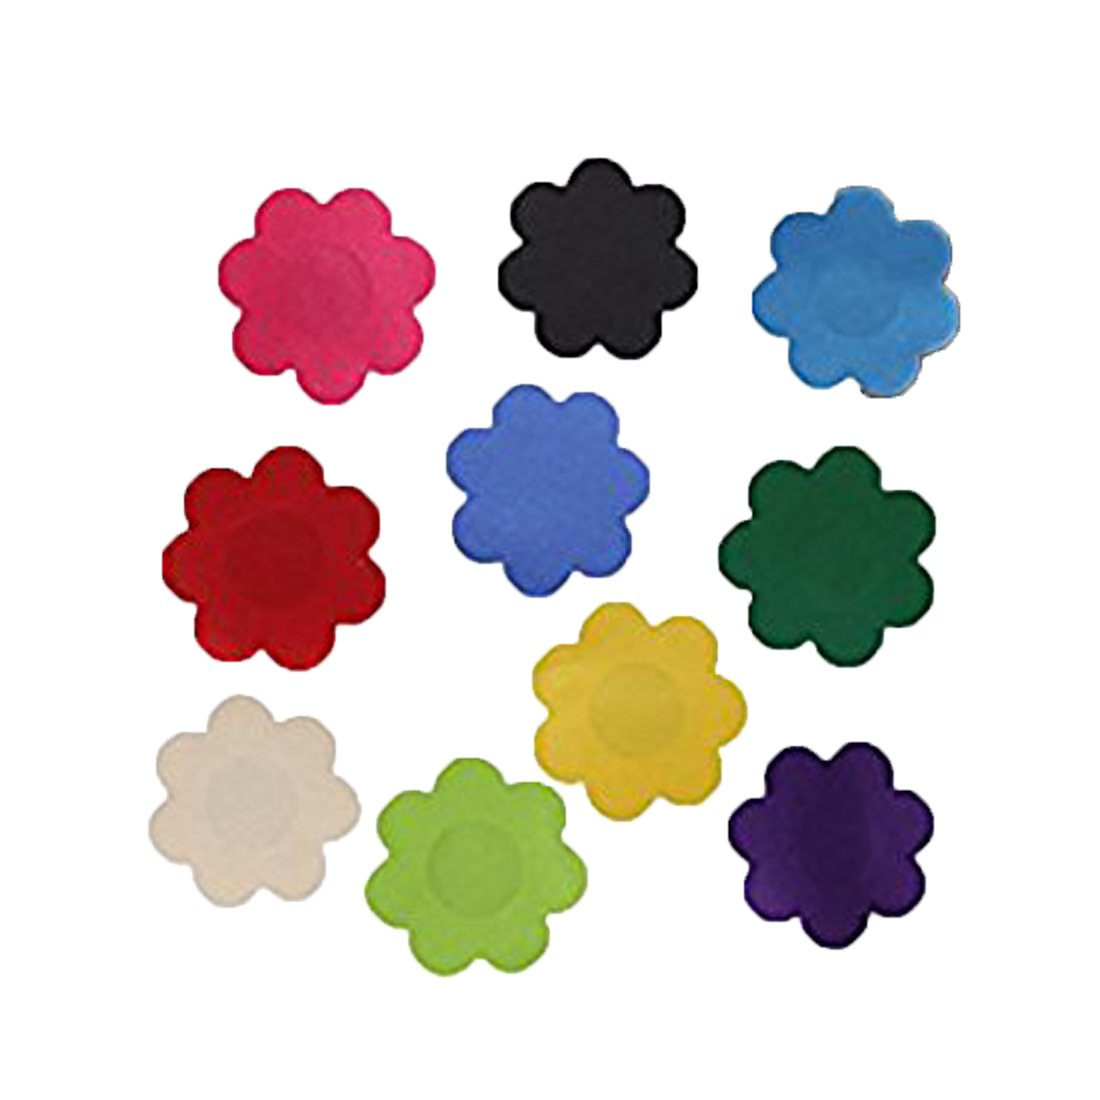 FLORATA Ladies Flower Shaped Self Adhesive Stickers Breast Nipple Covers Pasties Disposable Invisible Tape FLO@M2027-B-CN-LSY-BB